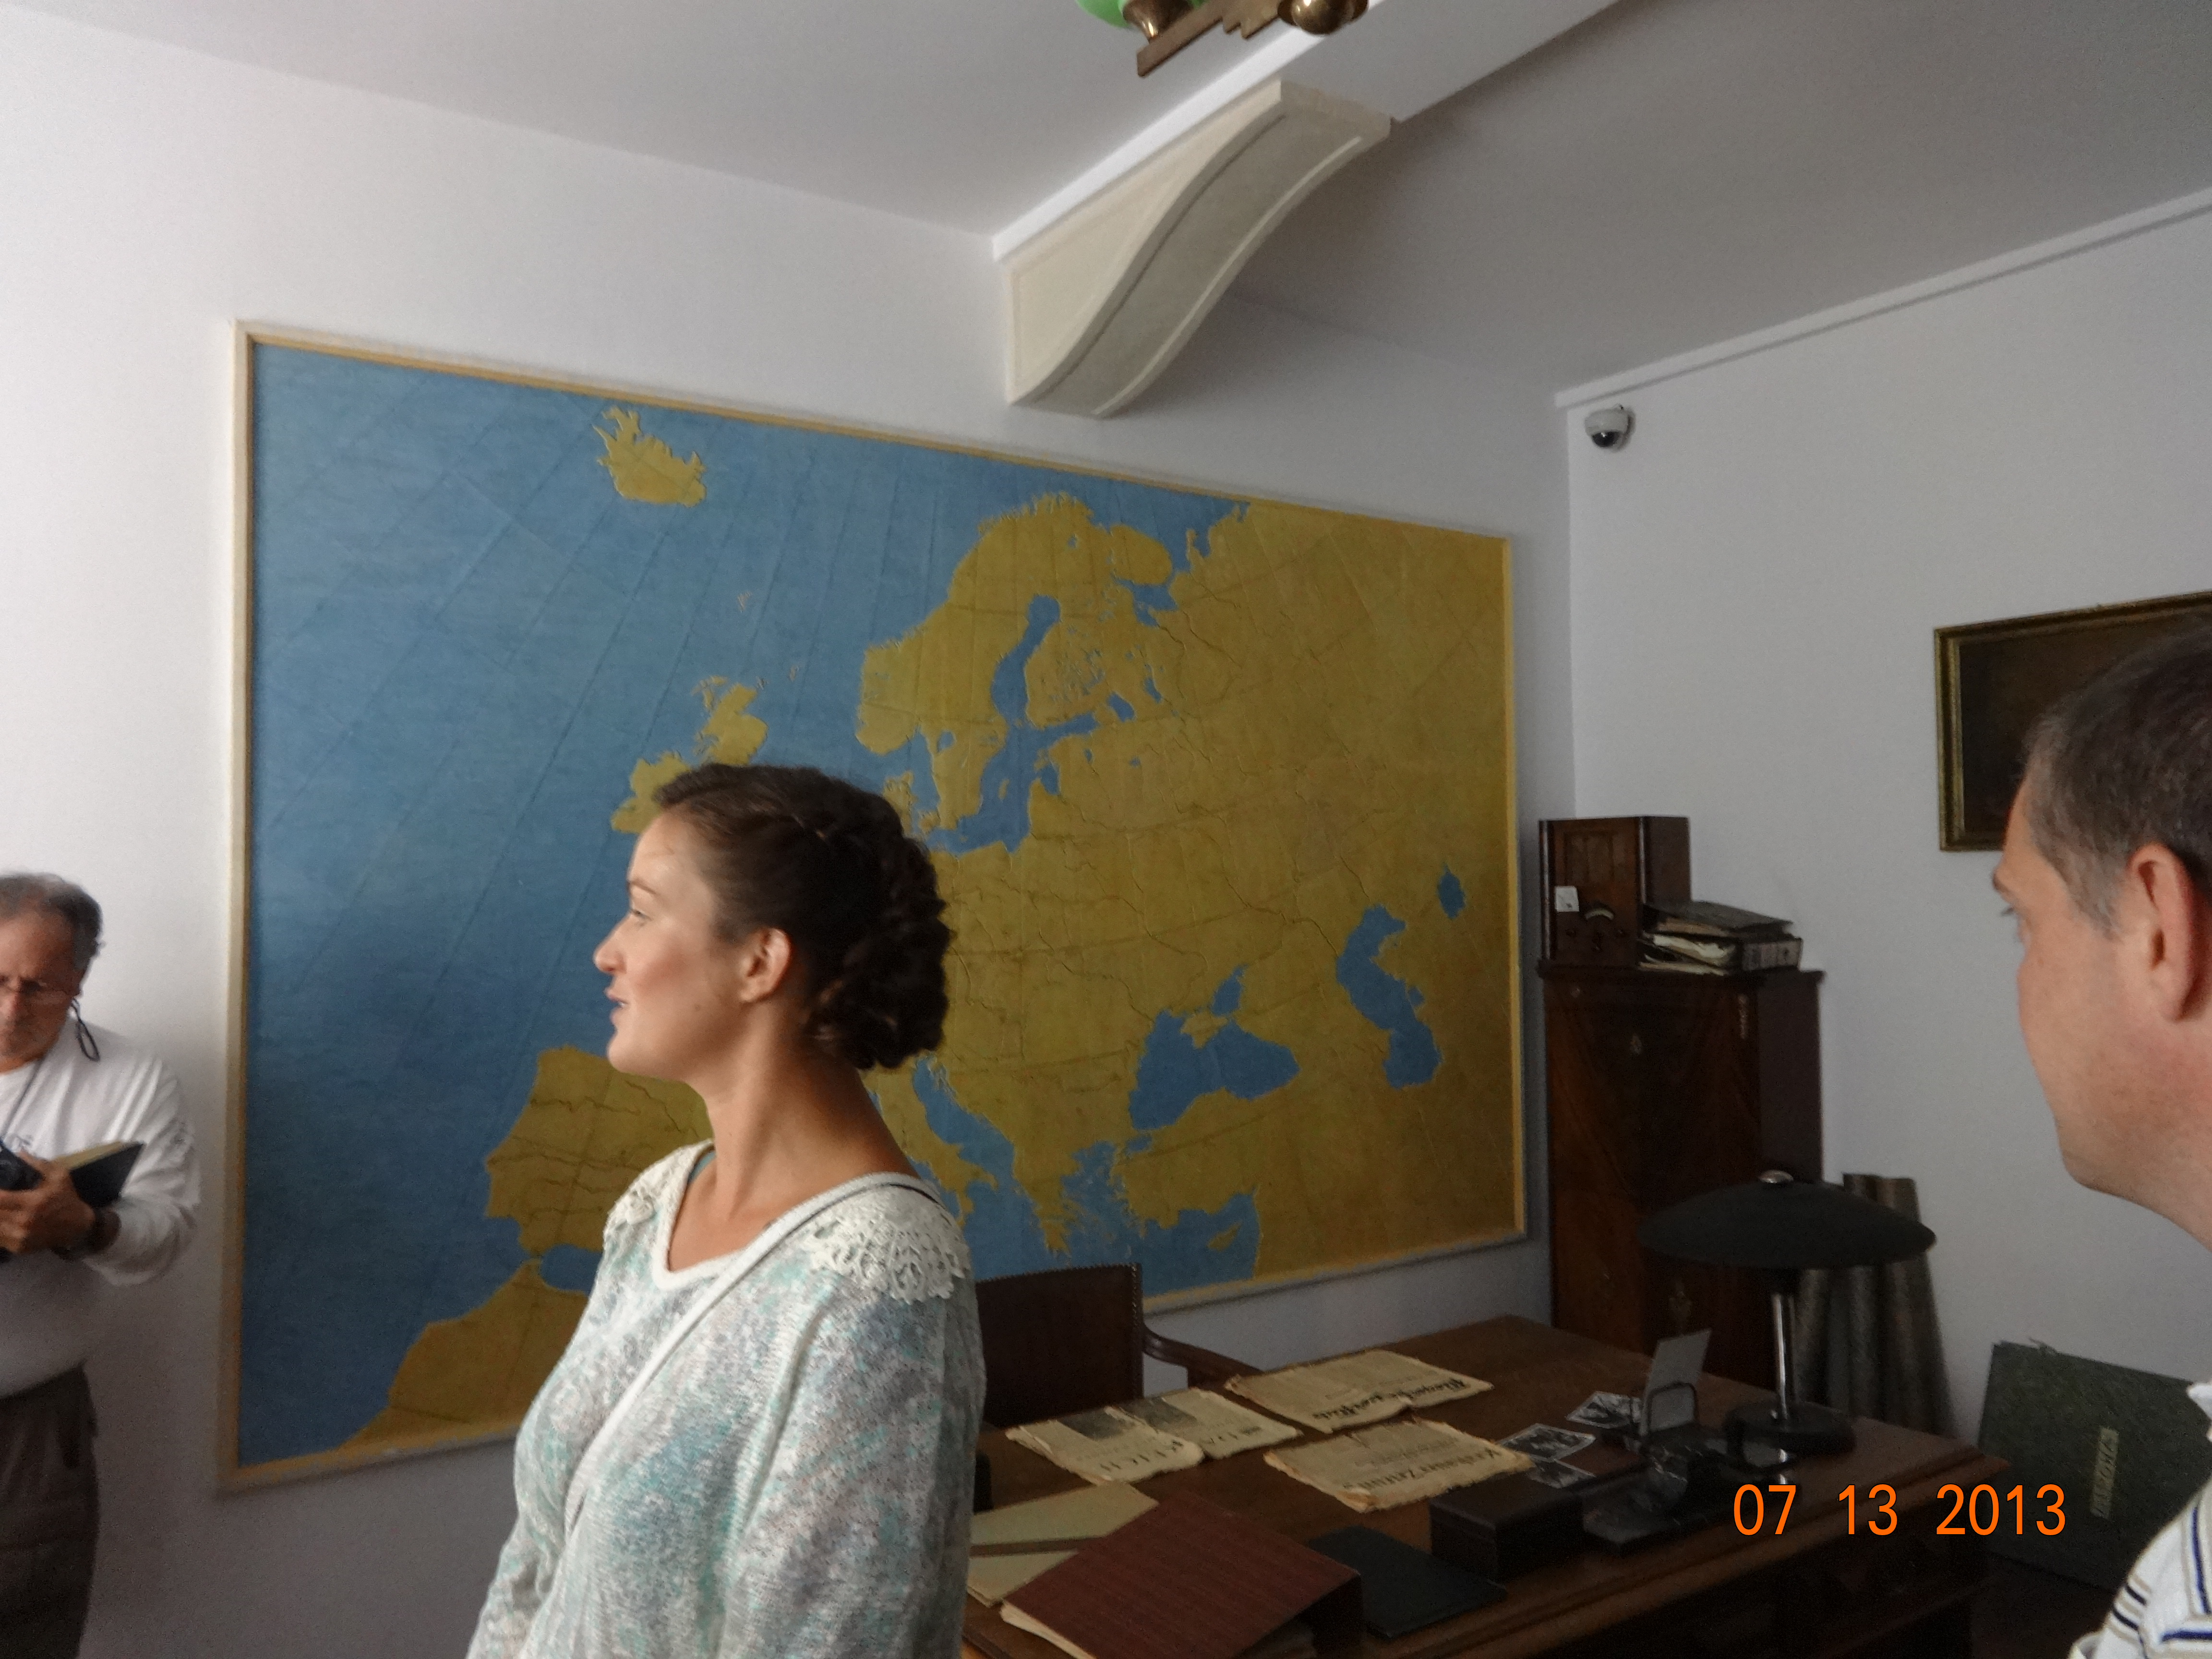 belzec teaching history matters oscar schindler s office